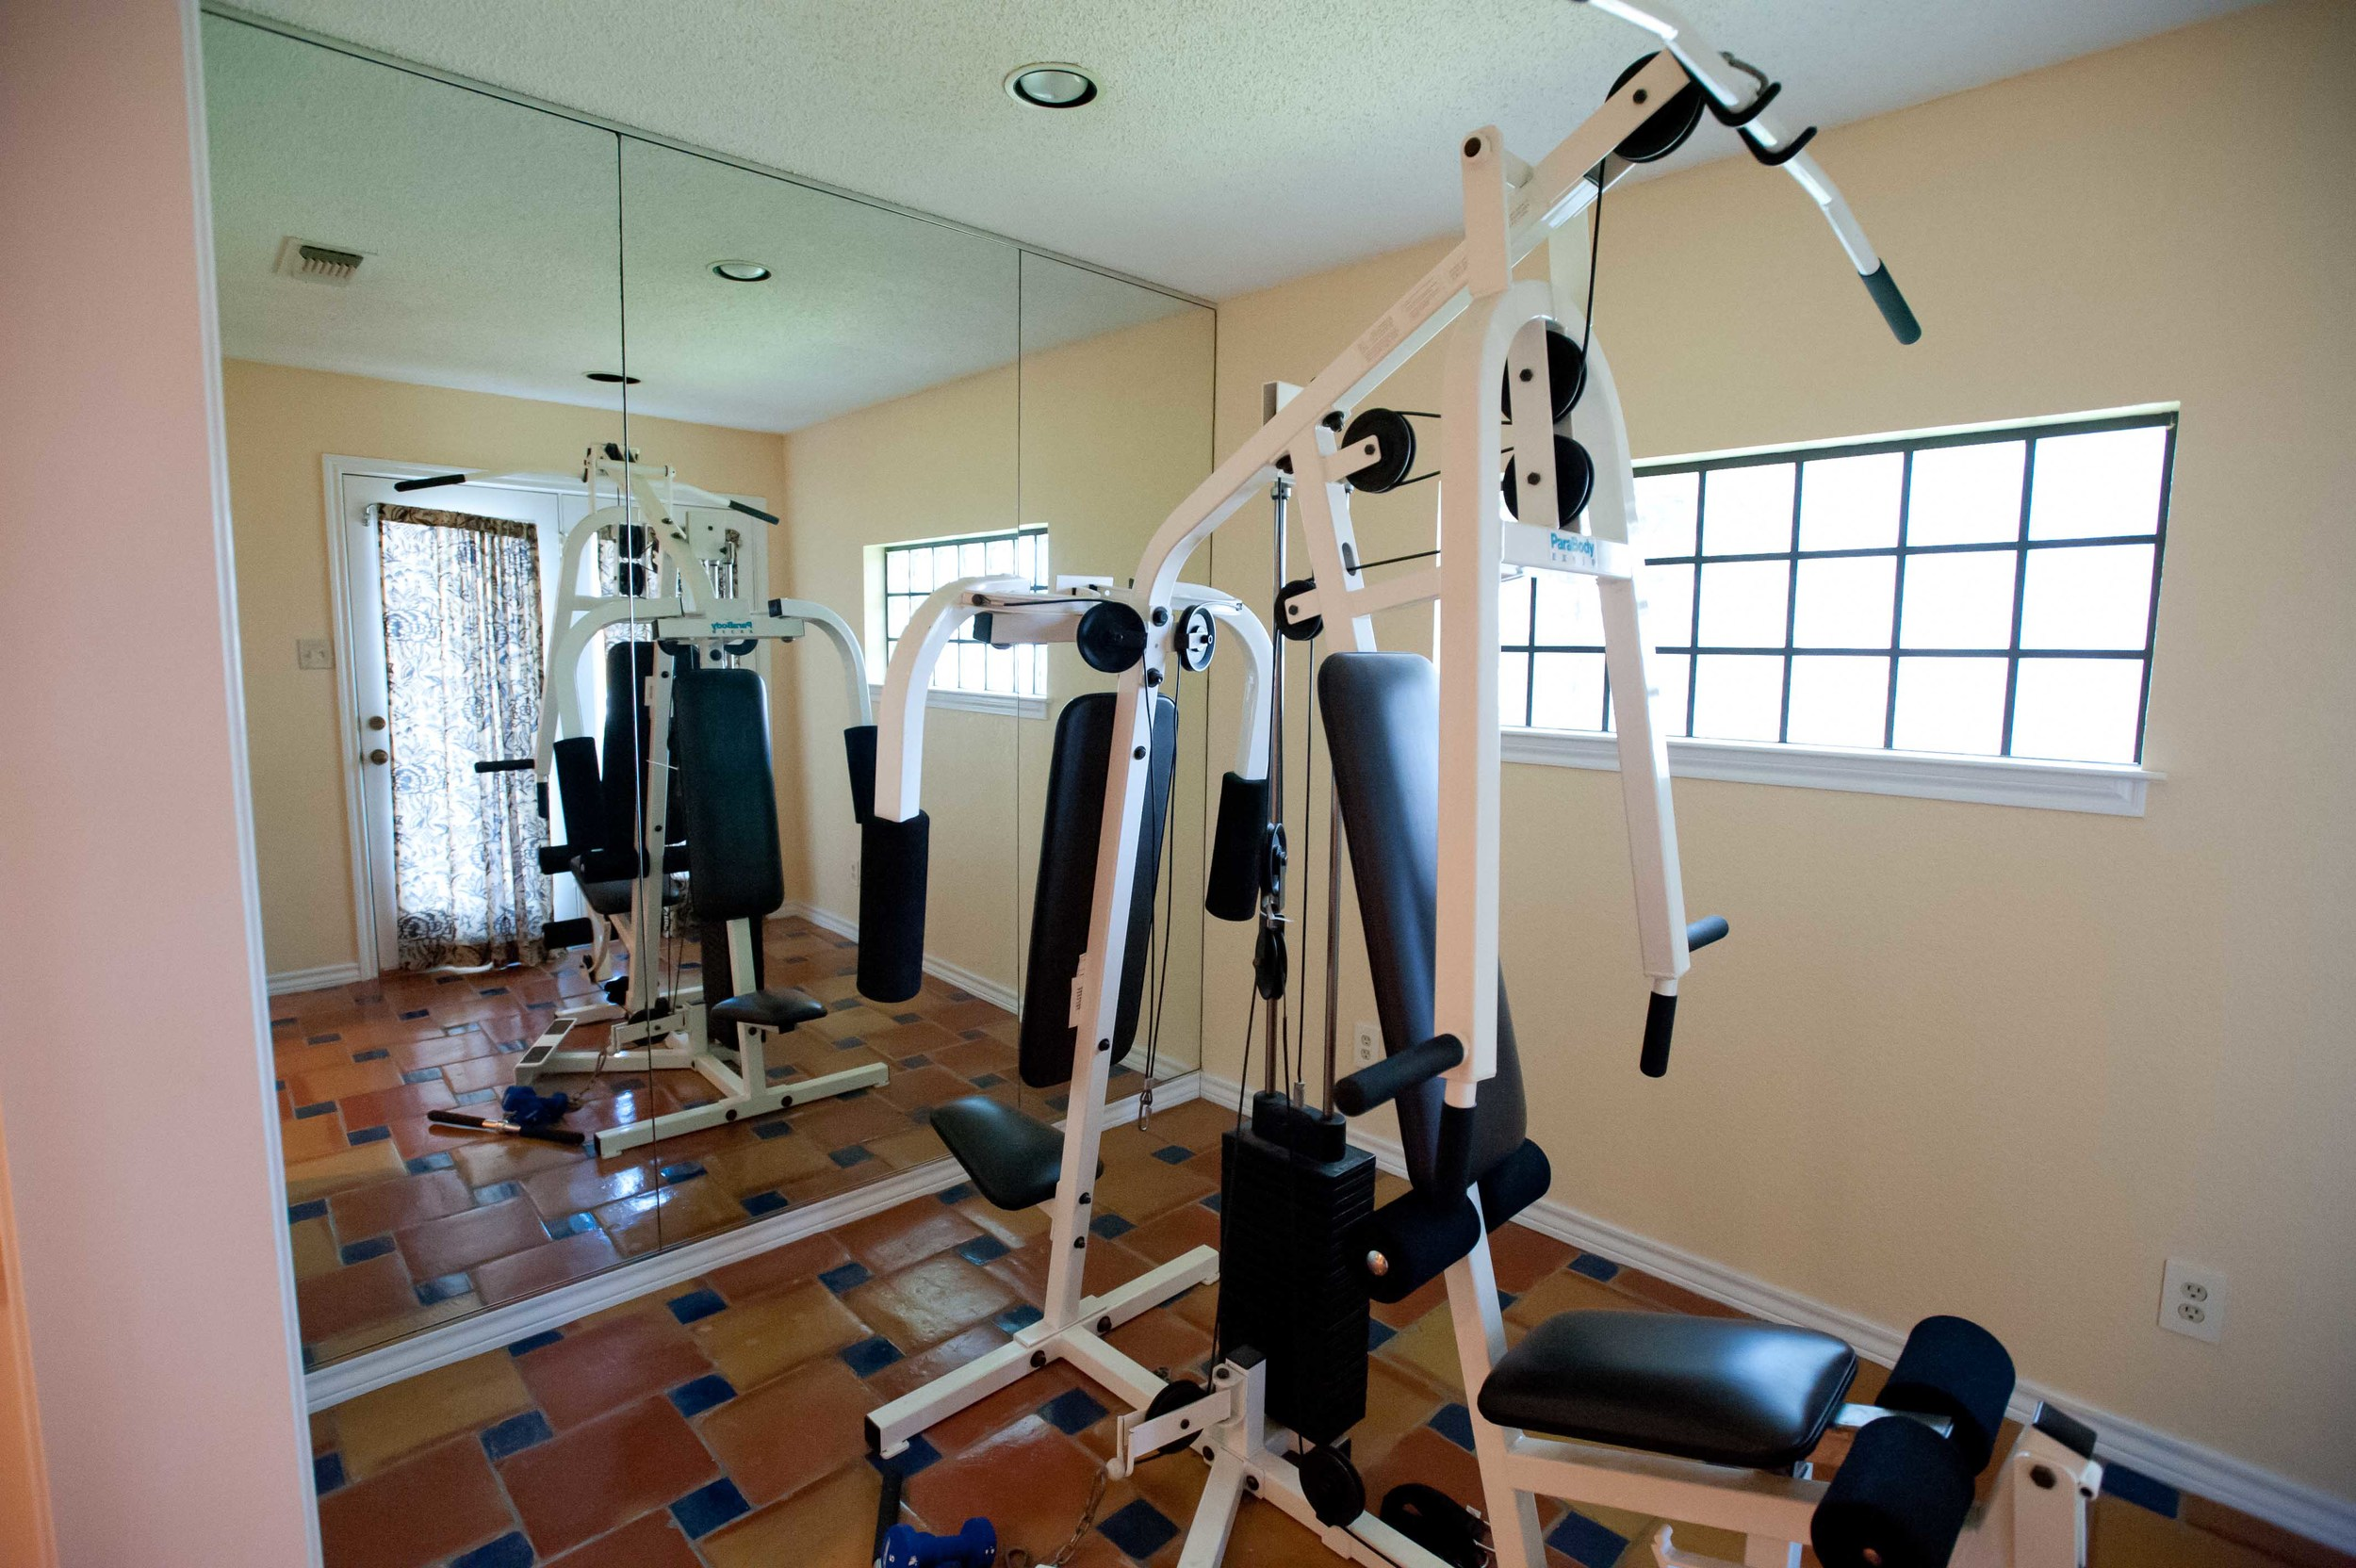 Adjacent to the bathroom was a mirrored workout room, with doors (not seen here) opening up to the backyard.